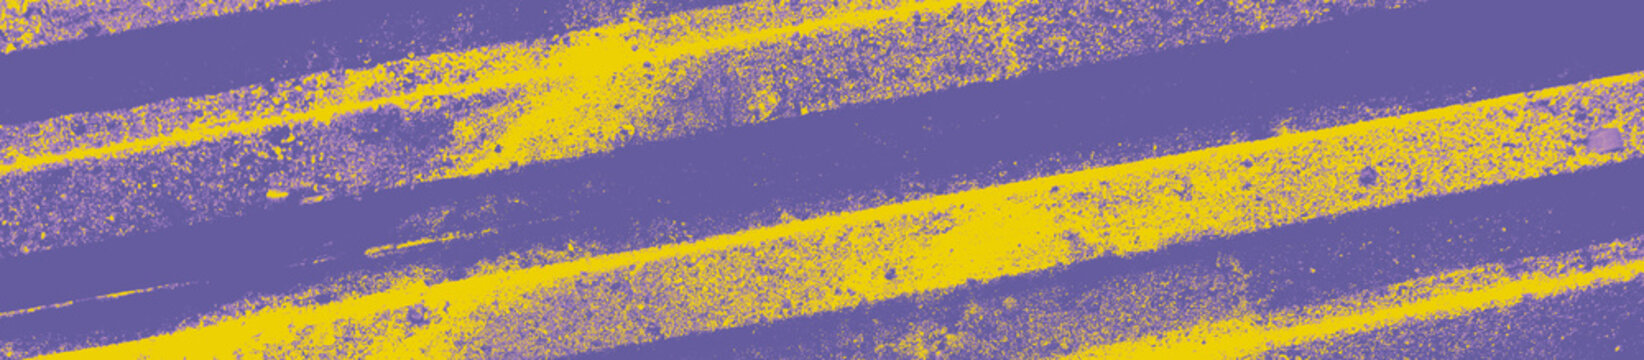 abstract violet, purple and yellow colors background for design